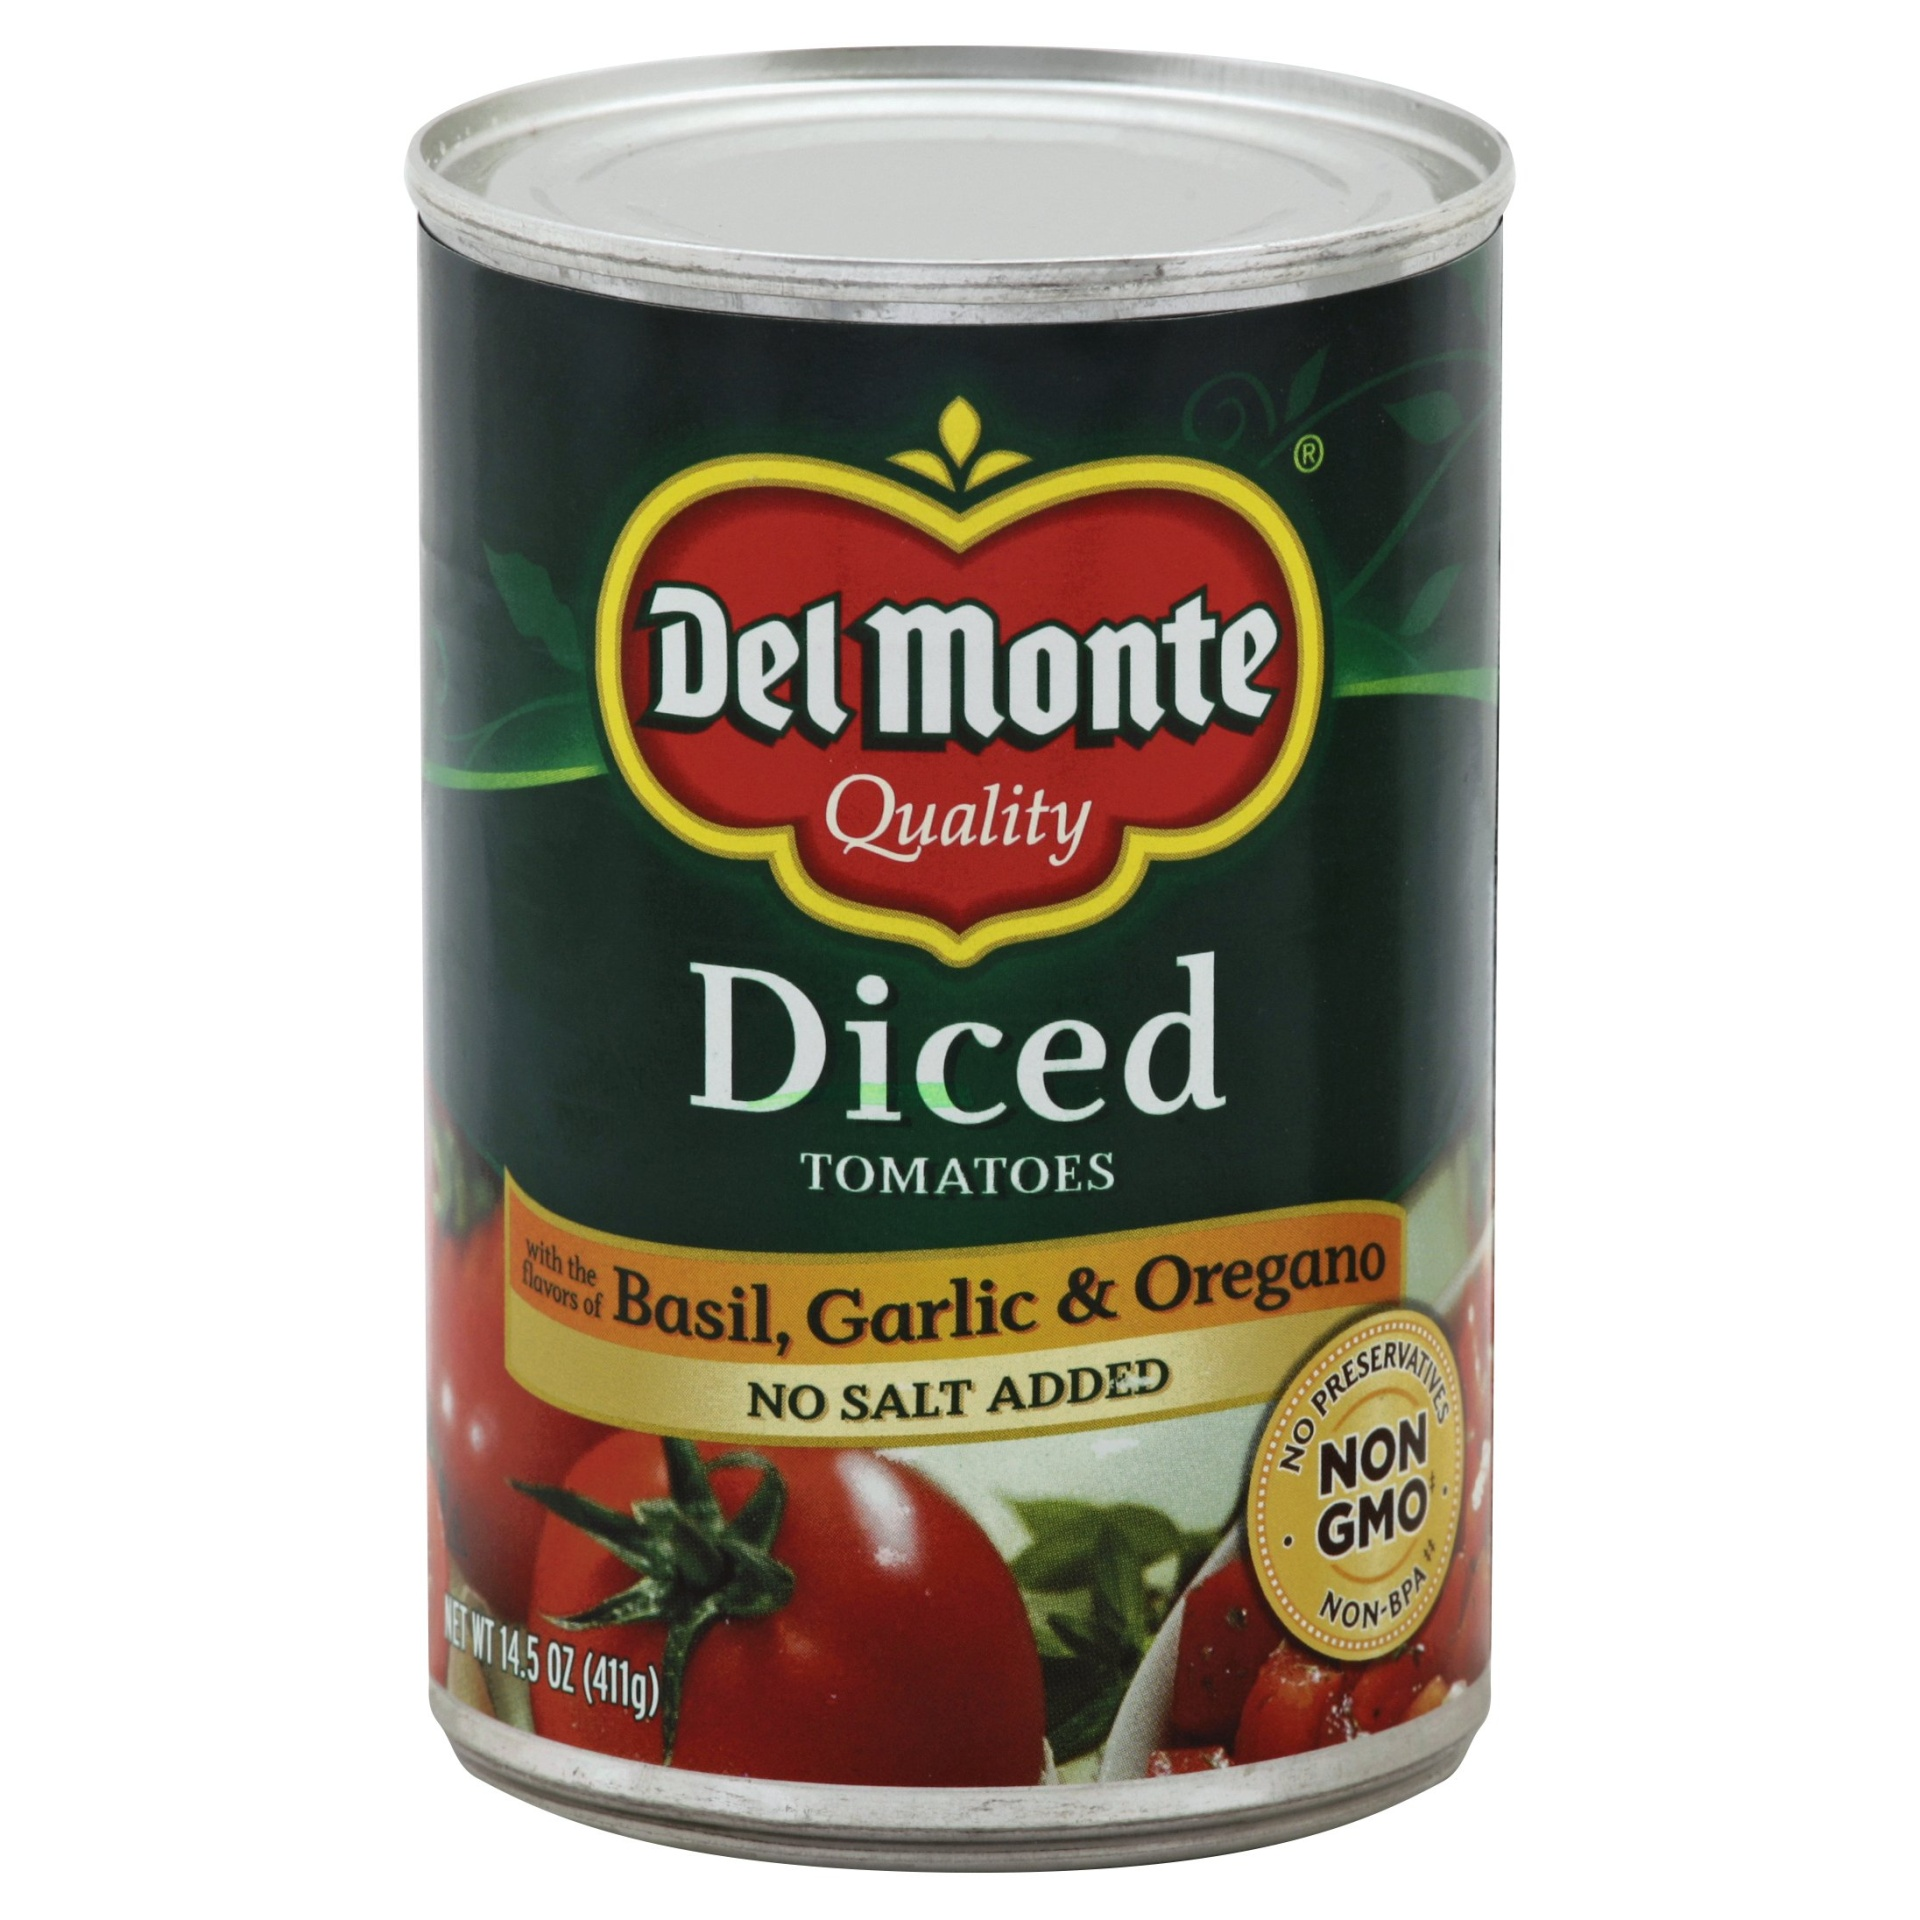 slide 1 of 3, Del Monte Diced Tomatoes Basil, Garlic & Oregano No Salt Added,